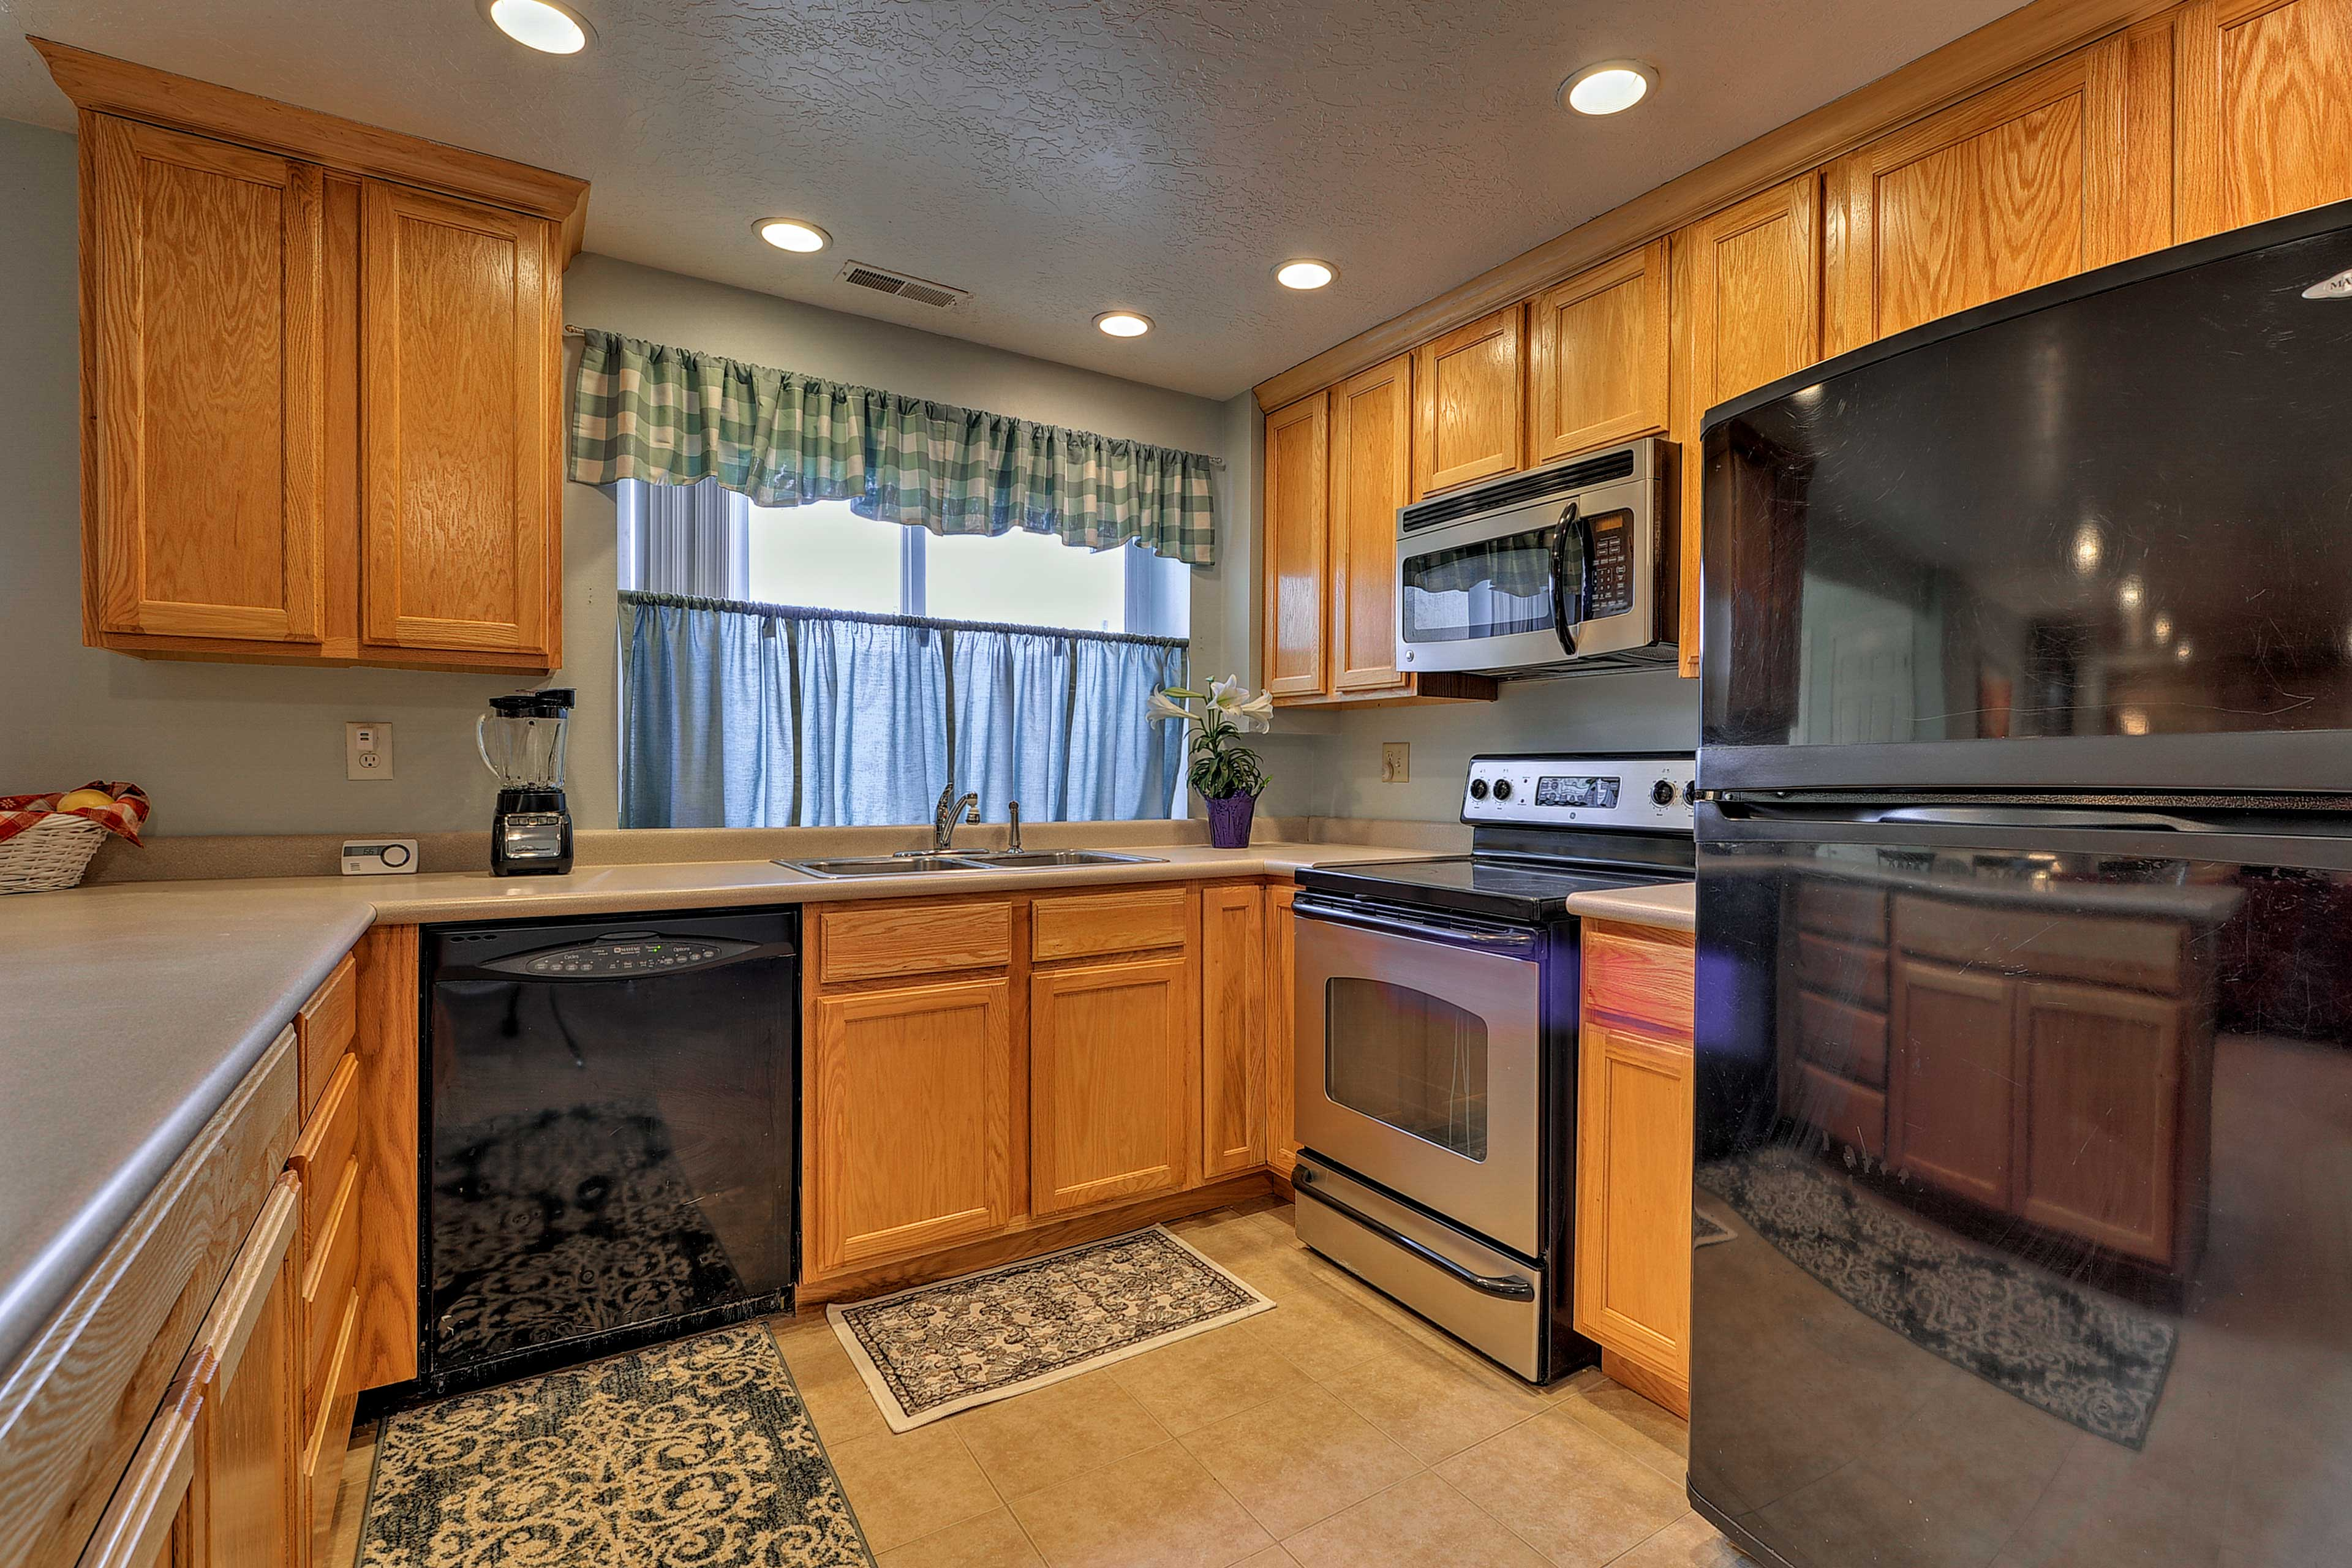 The fully equipped kitchen has everything you need for your favorite meals.